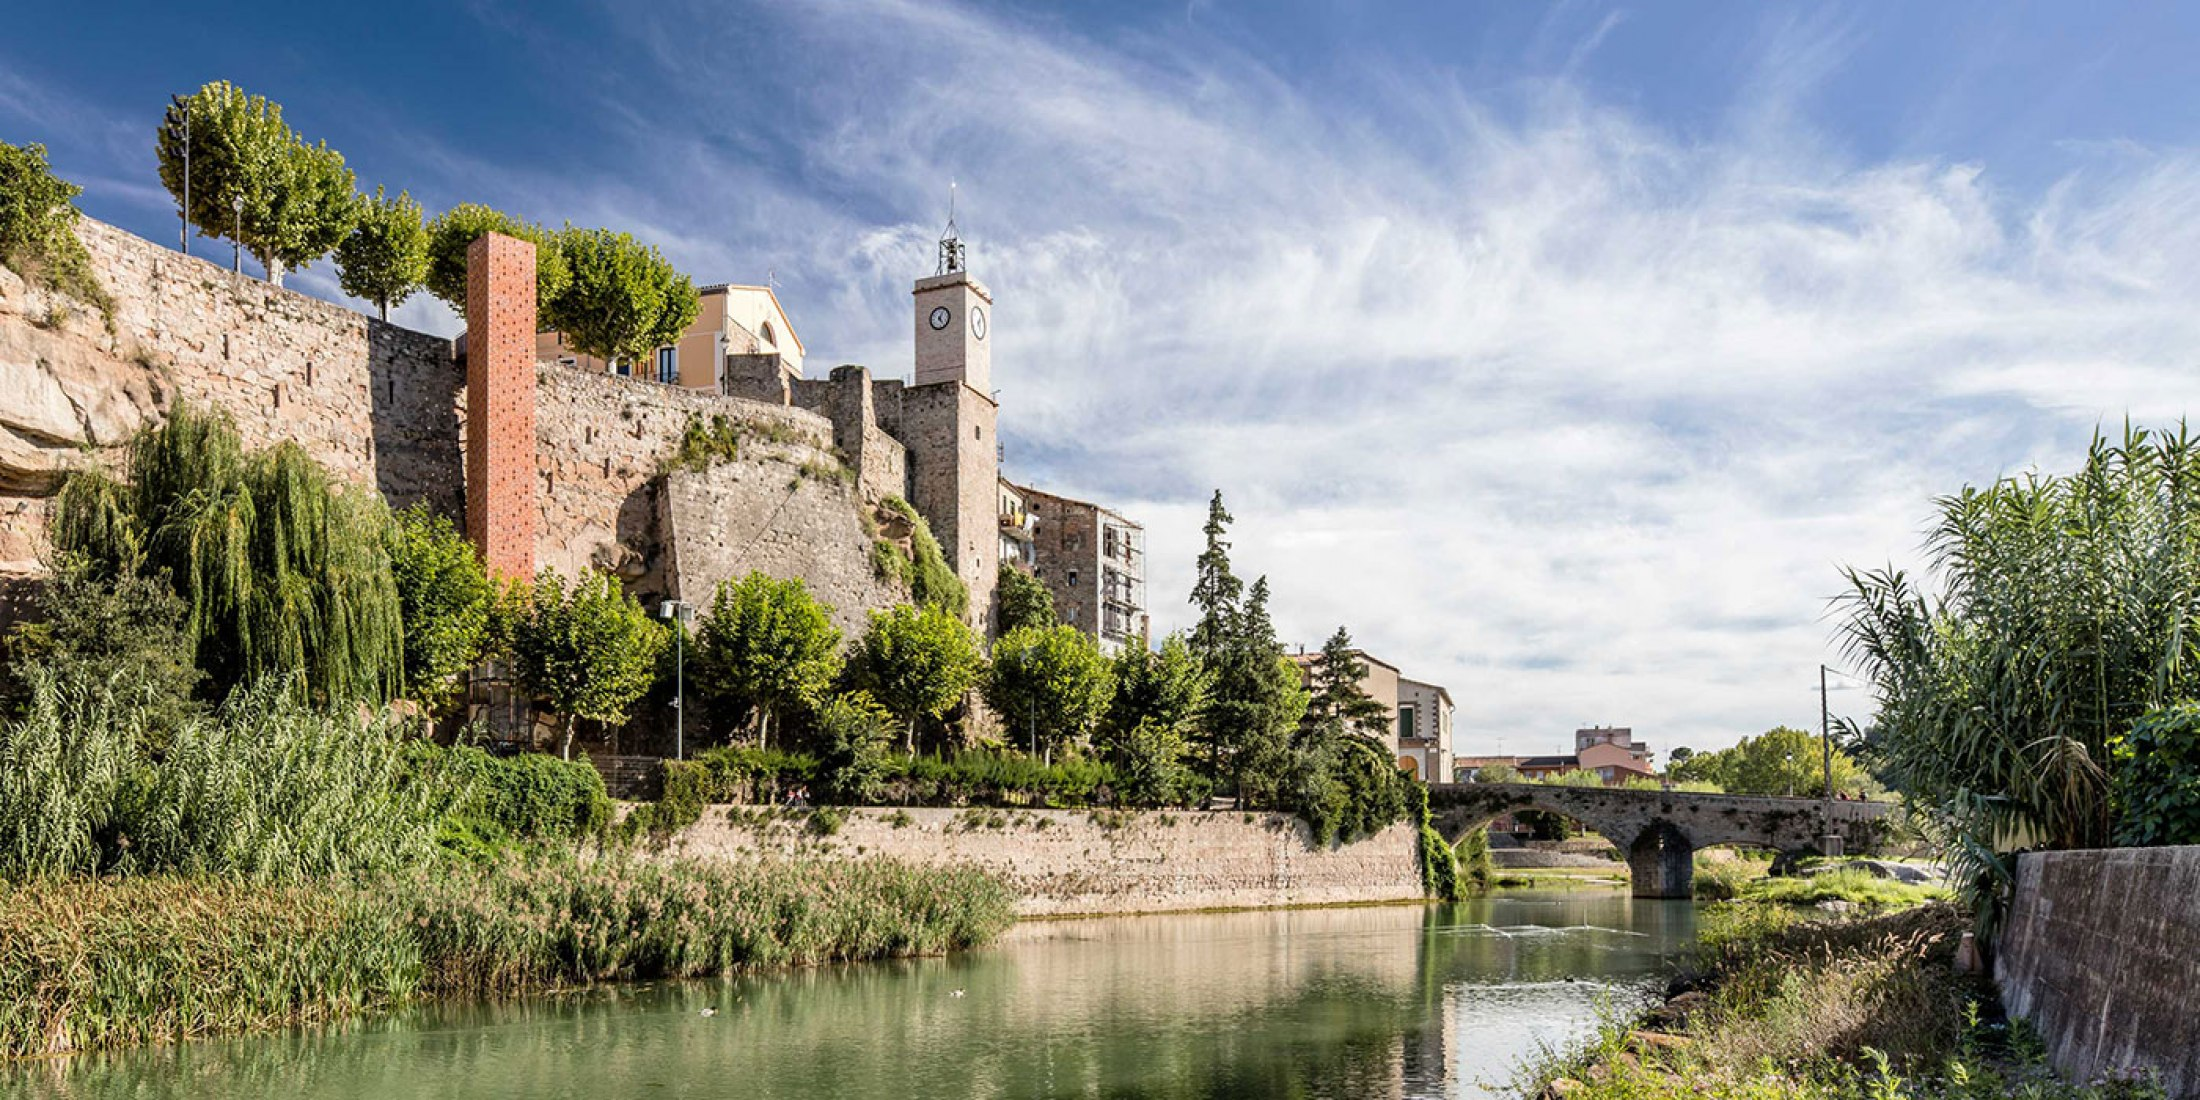 New access to Gironella's historic centre by Carles Enrich. Photography © Adrià Goula.